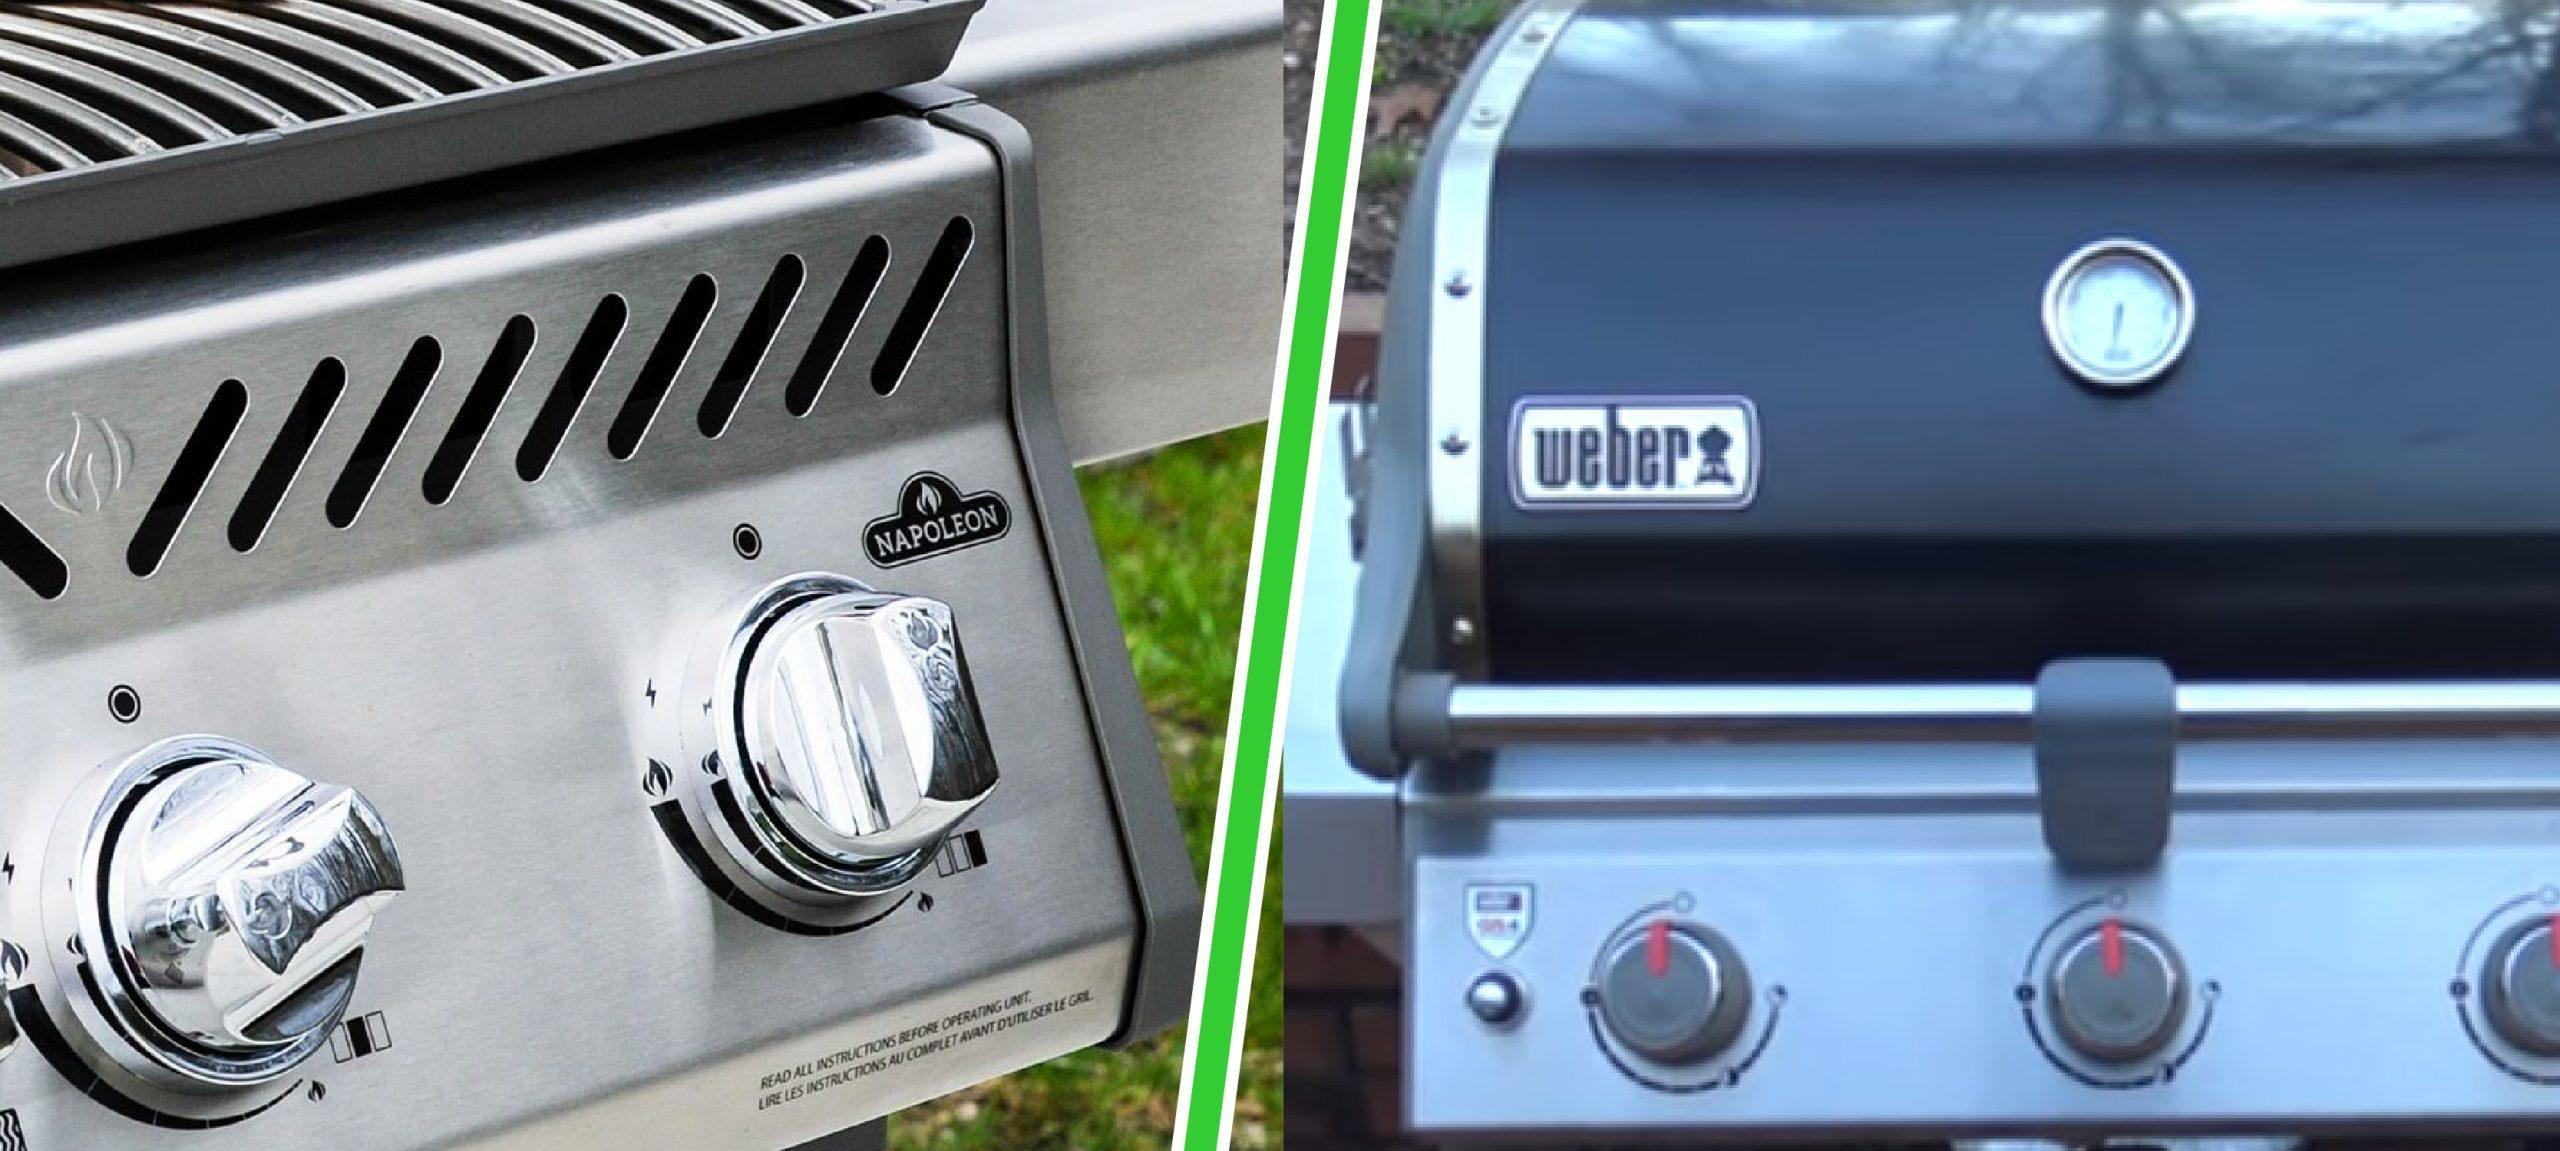 napoleon versus weber gas grills close up view